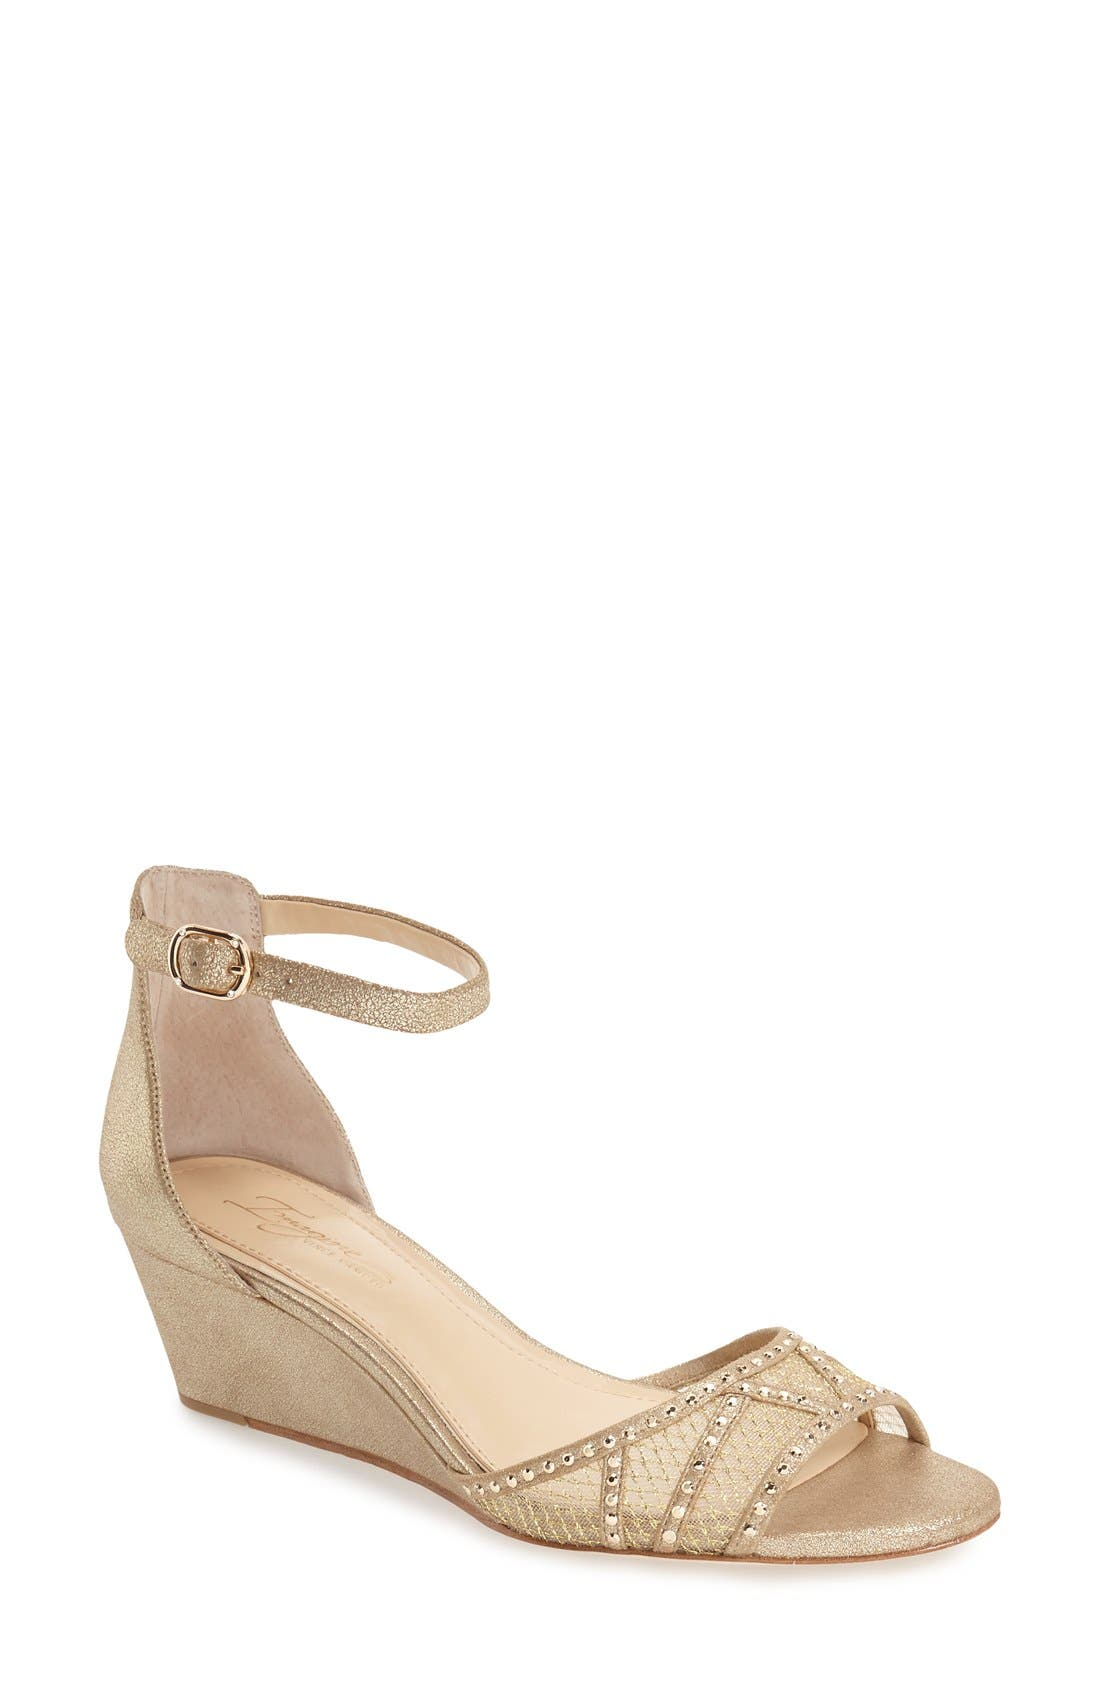 Alternate Image 1 Selected - Imagine by Vince Camuto 'Joan' Studded Wedge Sandal (Women)